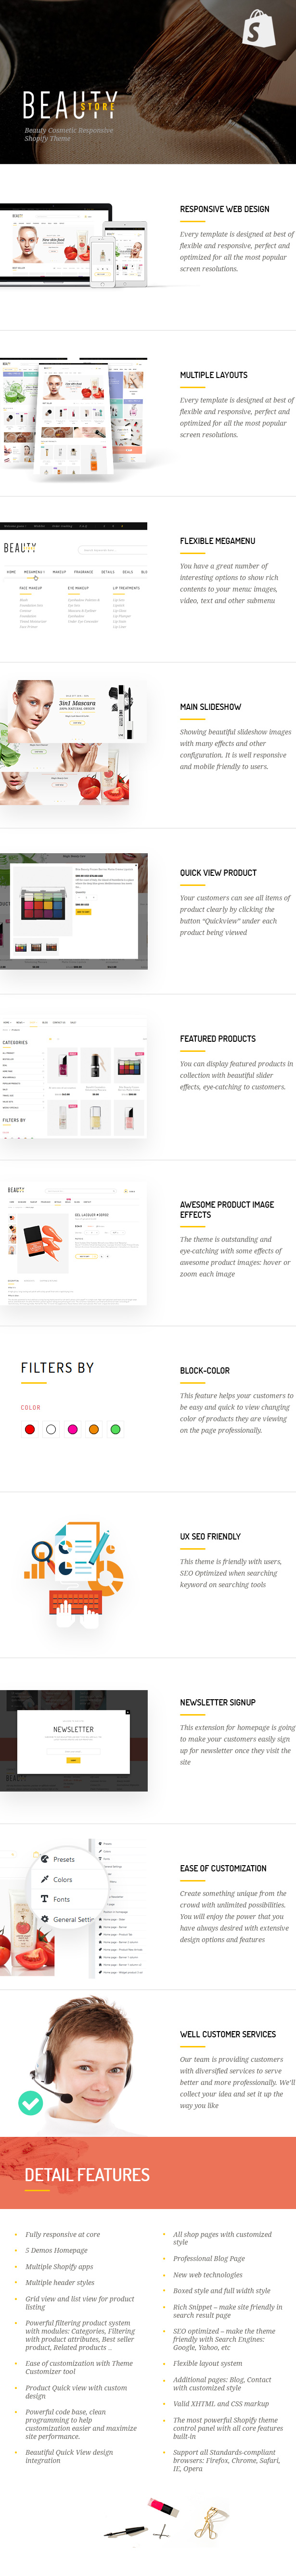 Beauty Shopify Theme FEATURES lists